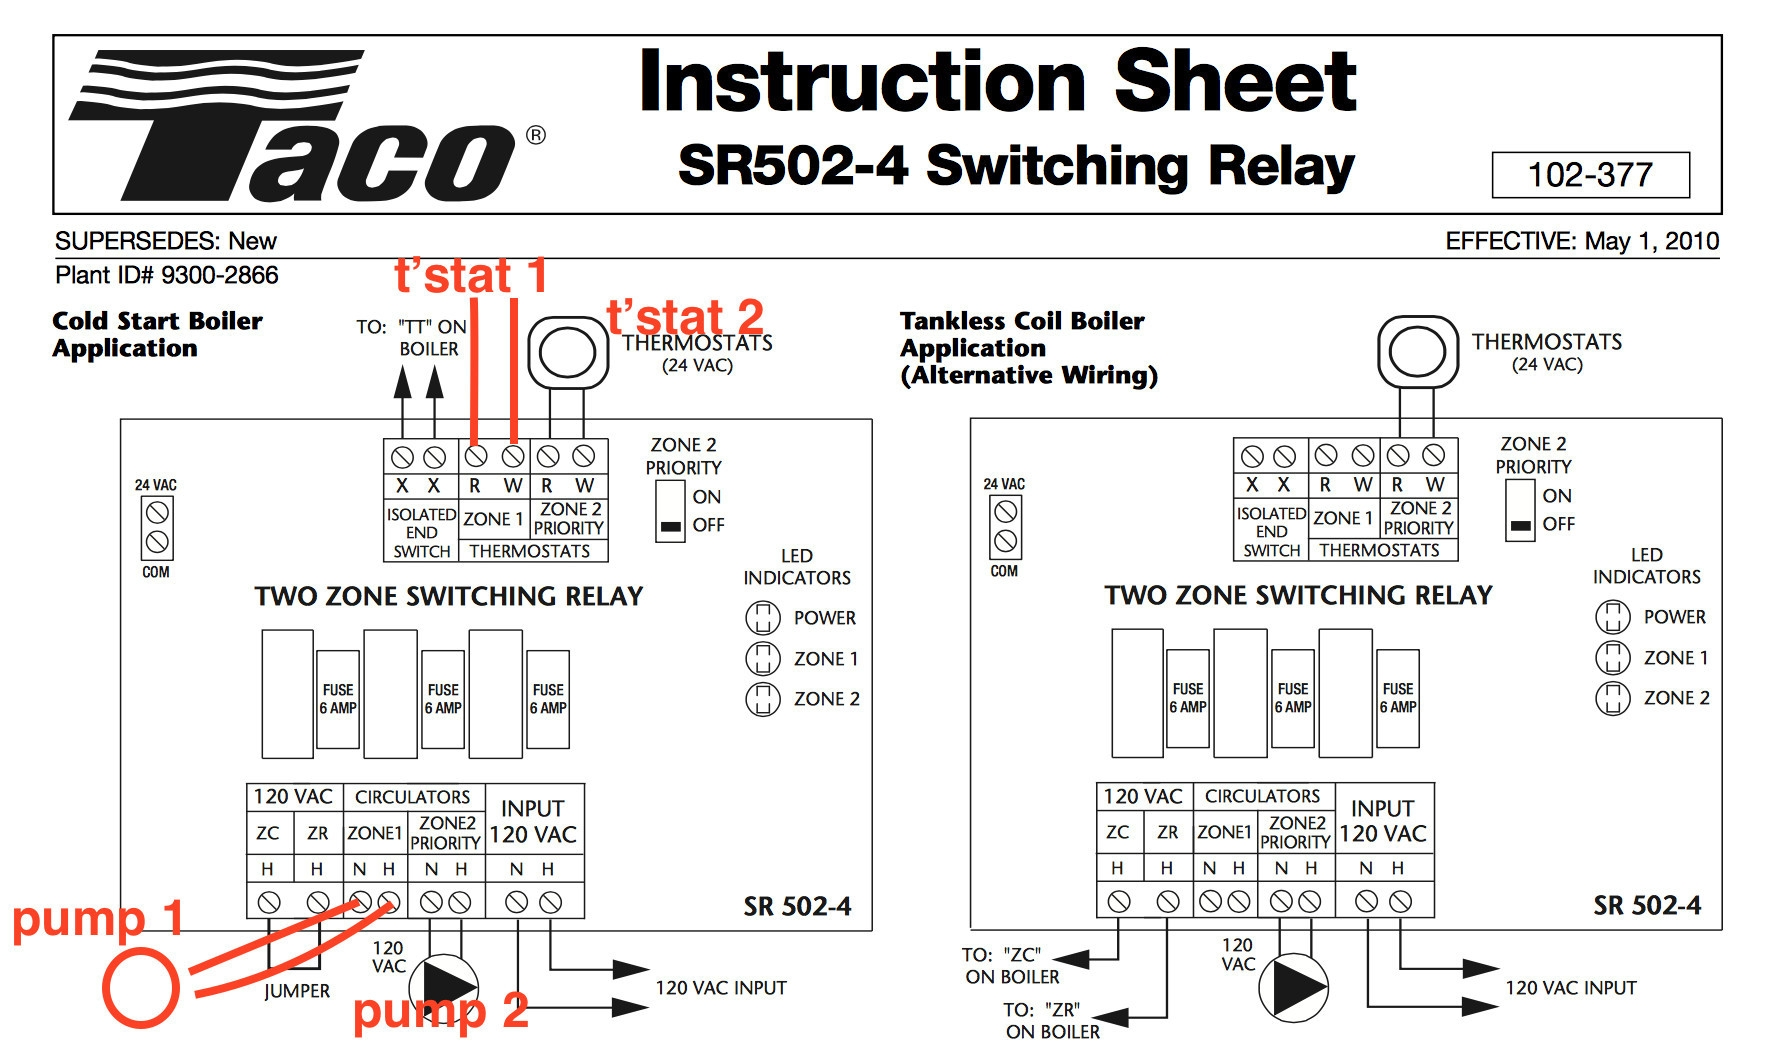 taco circulator pump wiring diagram Collection-Wiring Diagram Detail Name taco circulator pump wiring diagram – Taco Valve Wiring Diagram Lenito 13-e